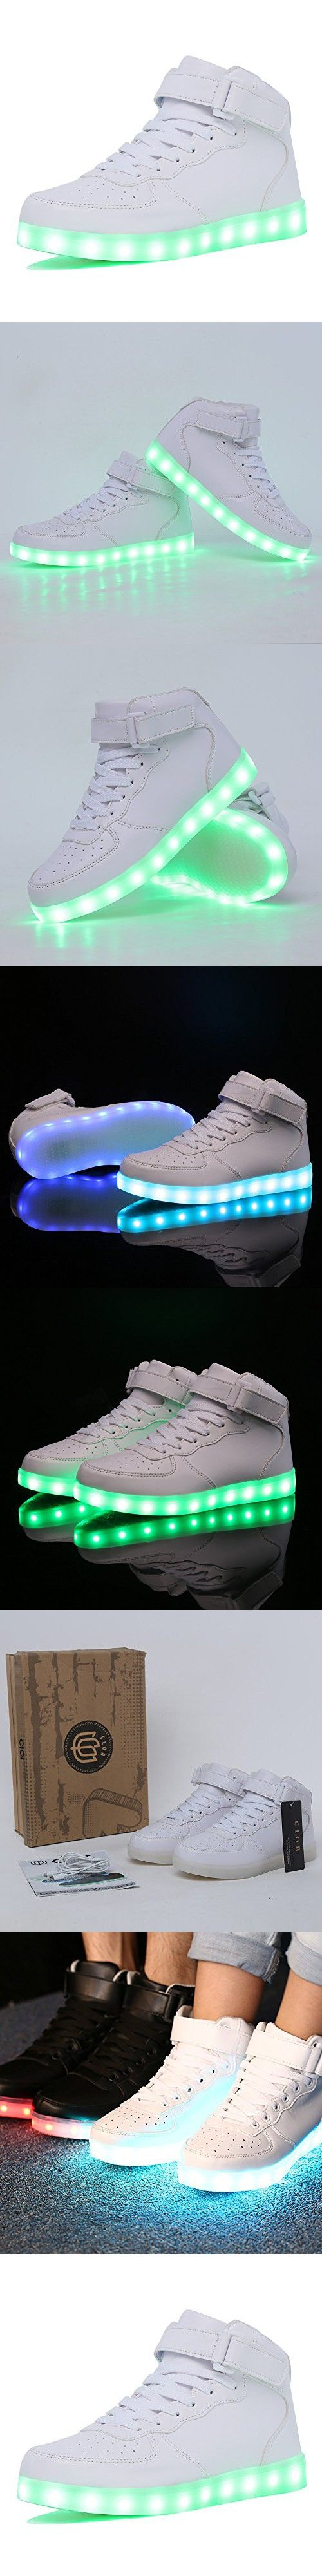 28c8903bd71 CIOR High Top Led Light Up Shoes 11 Colors Flashing Rechargeable Sneakers  for Mens Womens Girls Boys For Christmas,101B,02,39